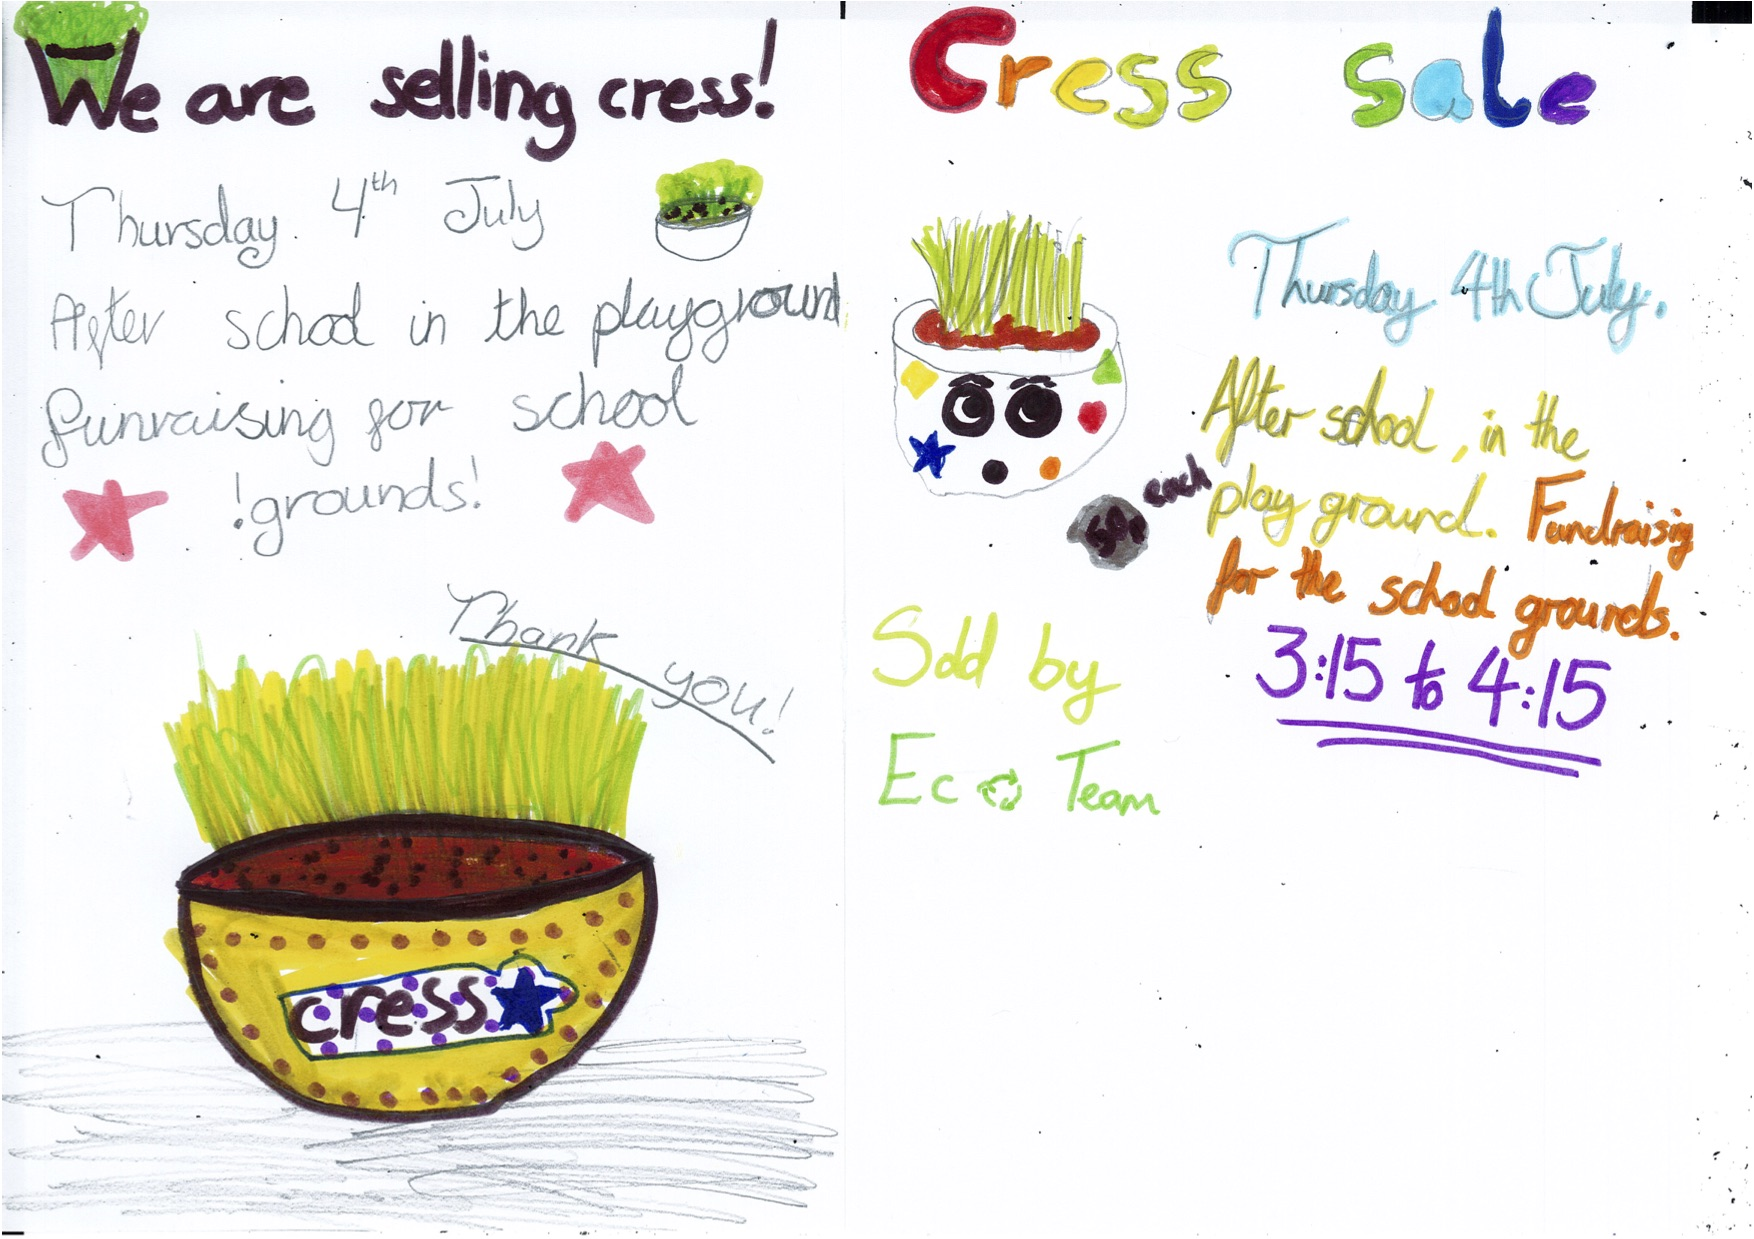 To help us raise funds towards the school grounds the children came up with the idea of reusing our school yogurt pots and using them as planters to grow cress. Each class has been involved in decorating and planting their own designs.